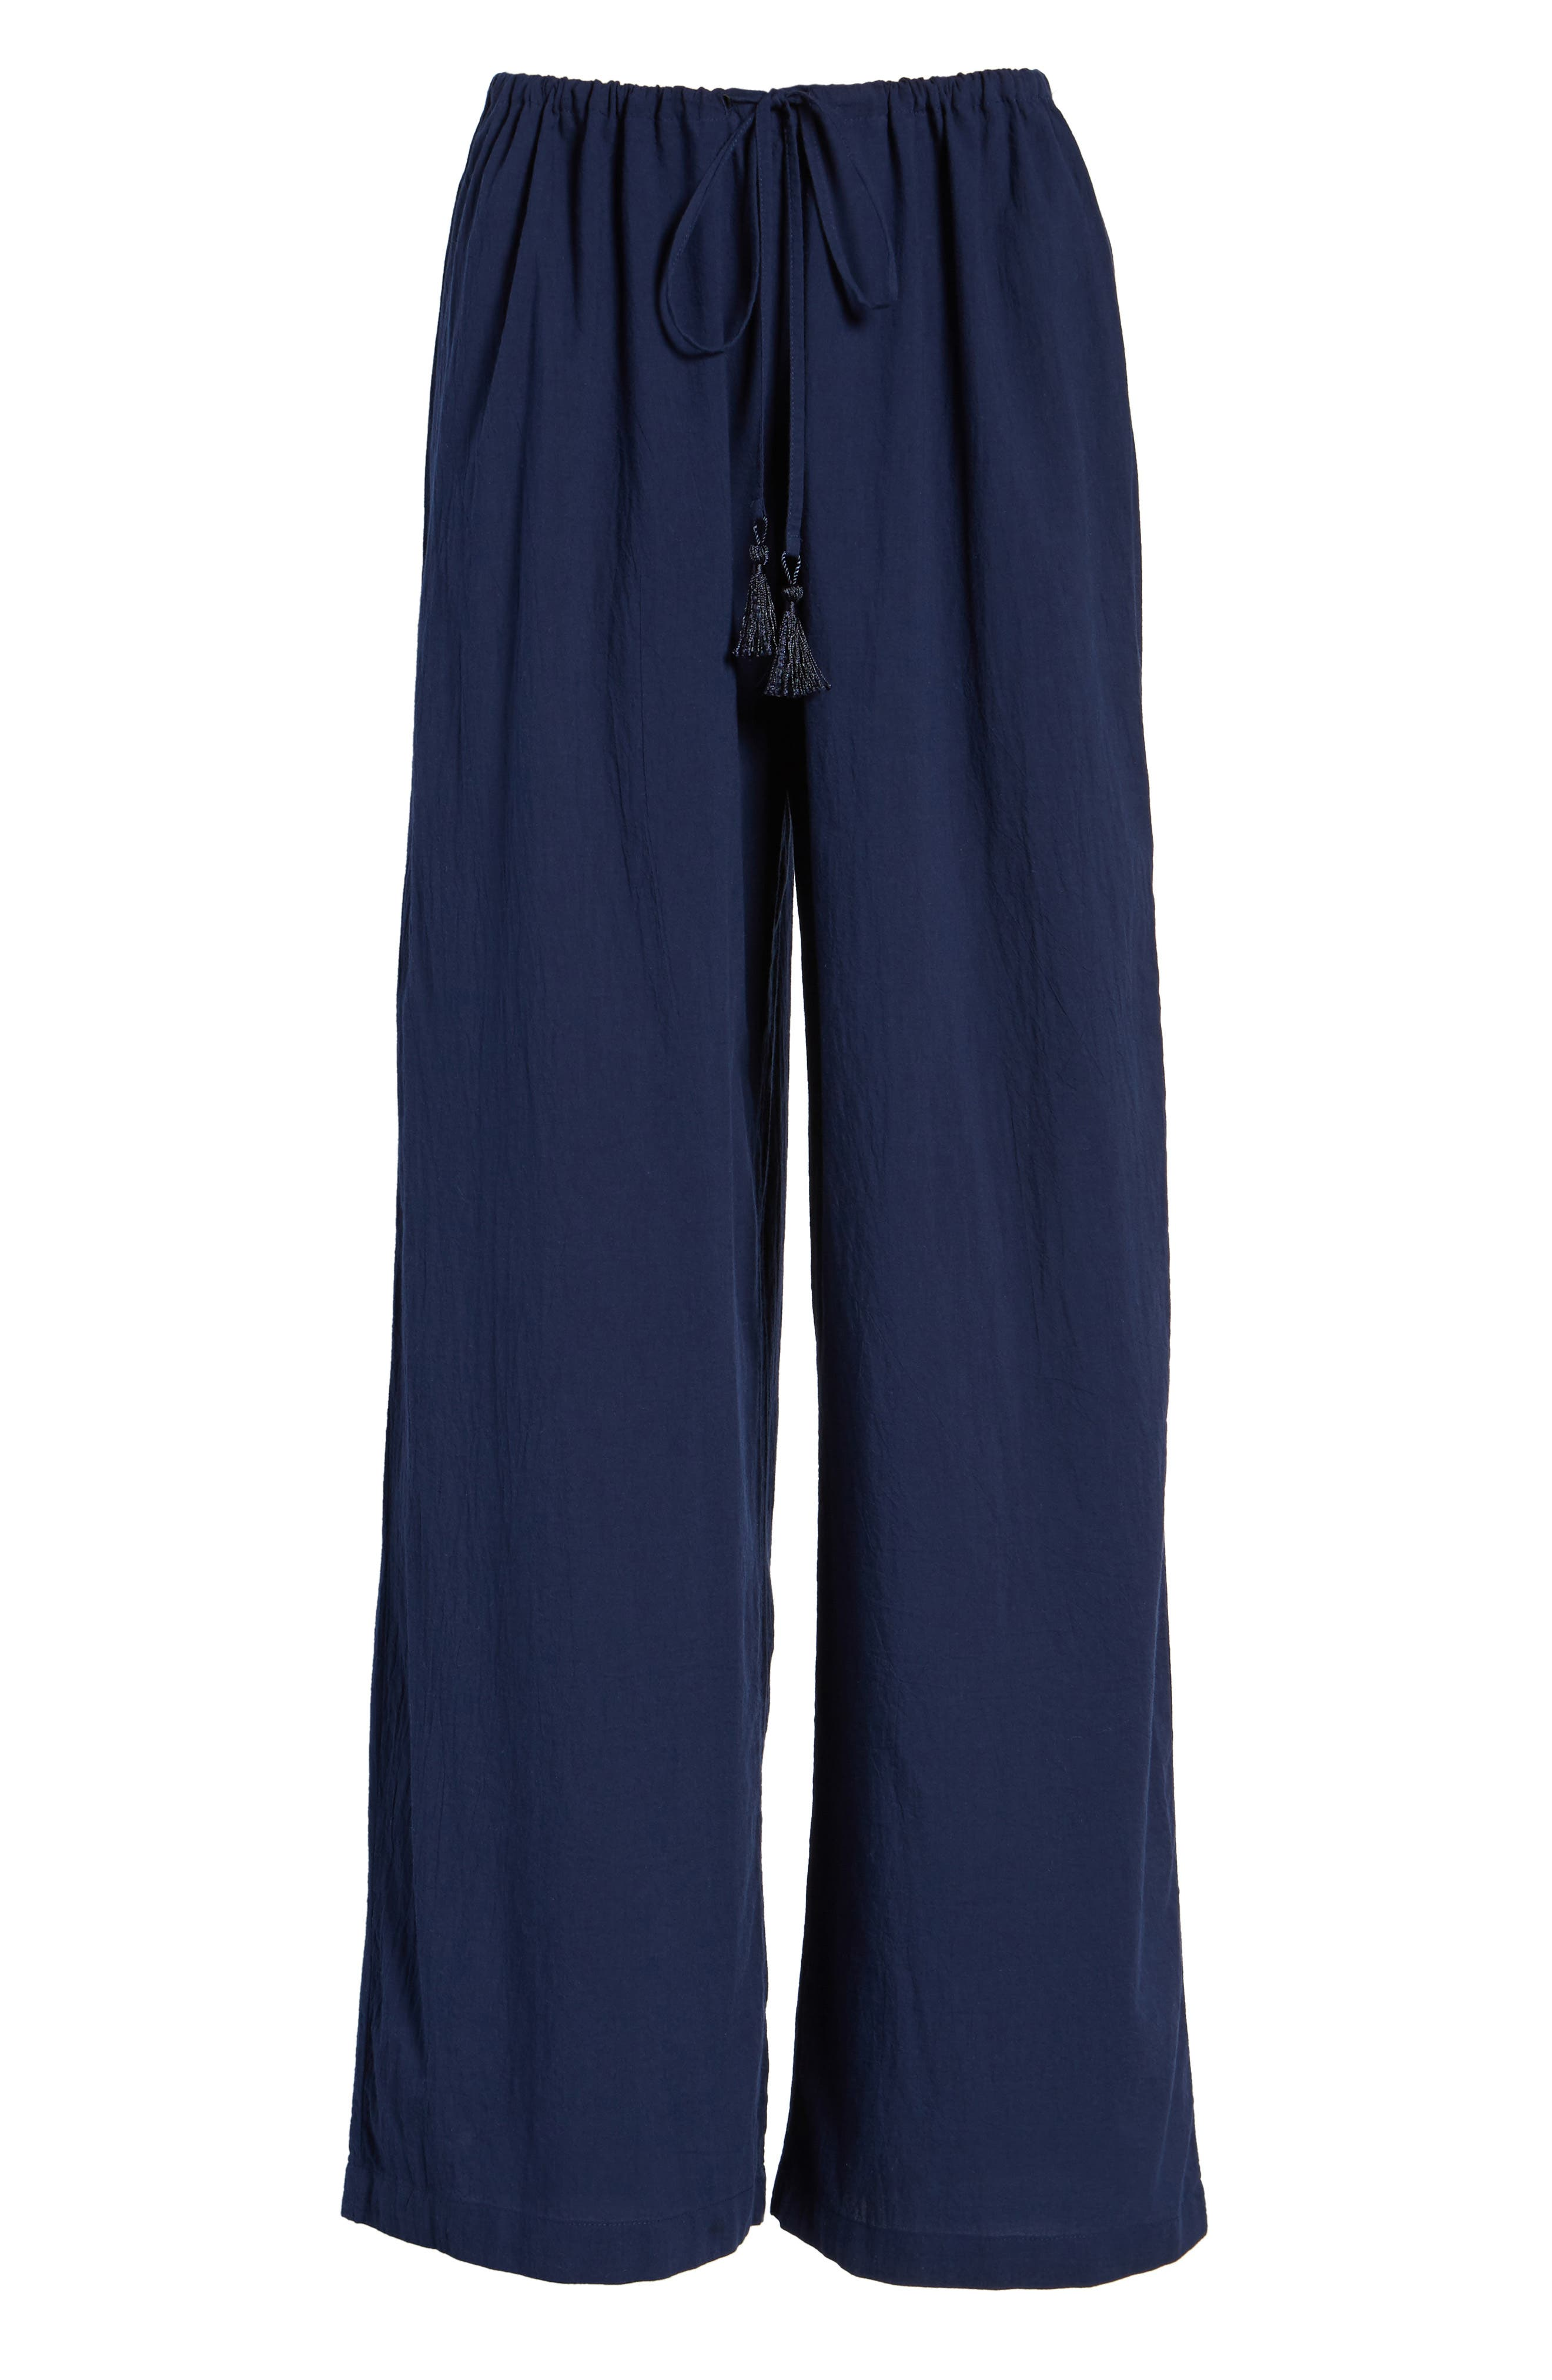 Cover-Up Pants,                         Main,                         color, Mare Navy